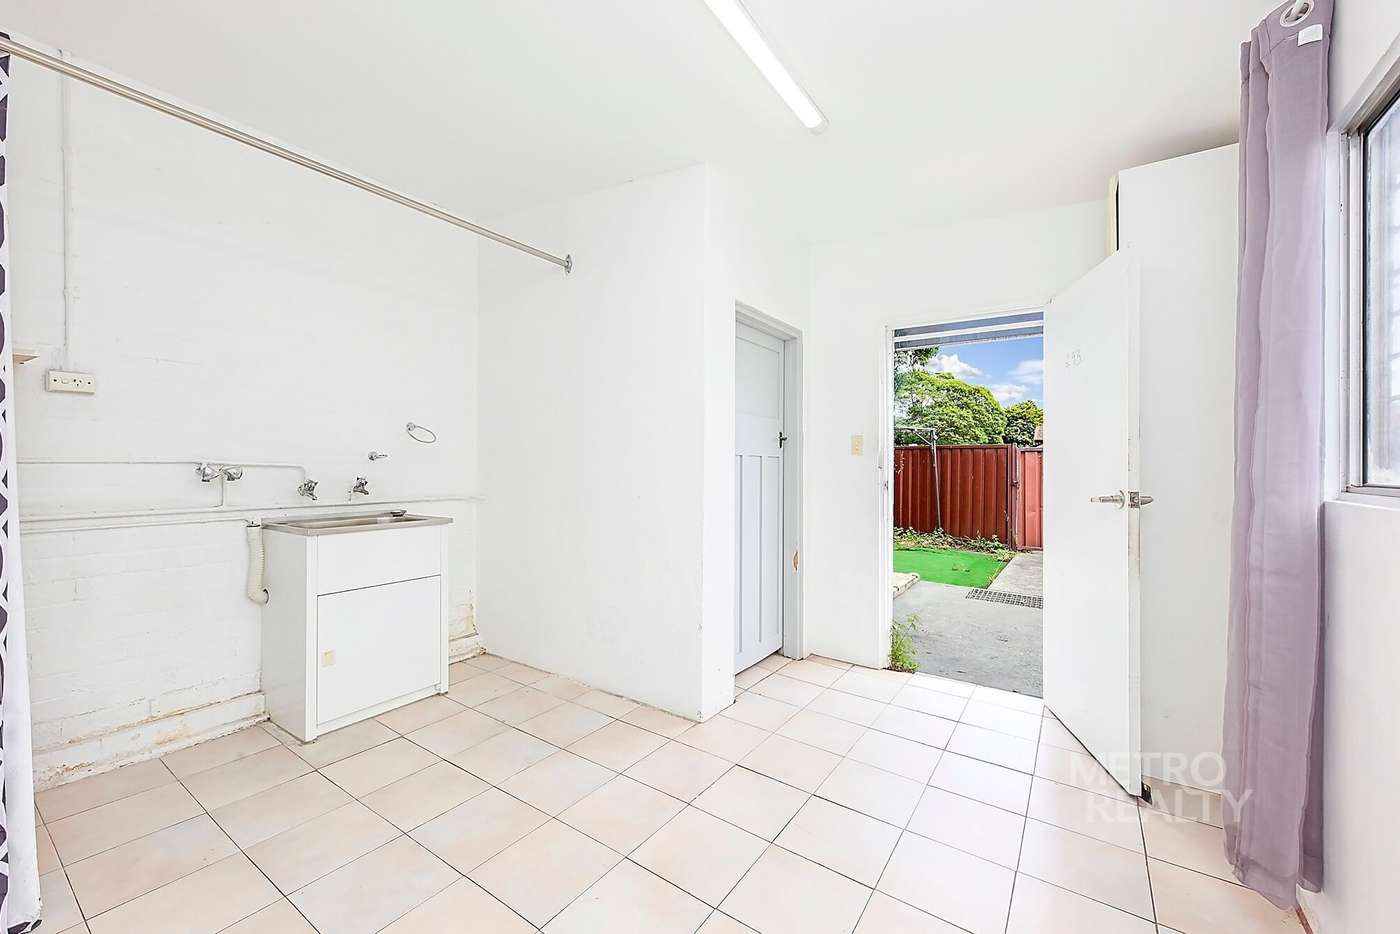 Seventh view of Homely house listing, 293 Canterbury Road, Canterbury NSW 2193